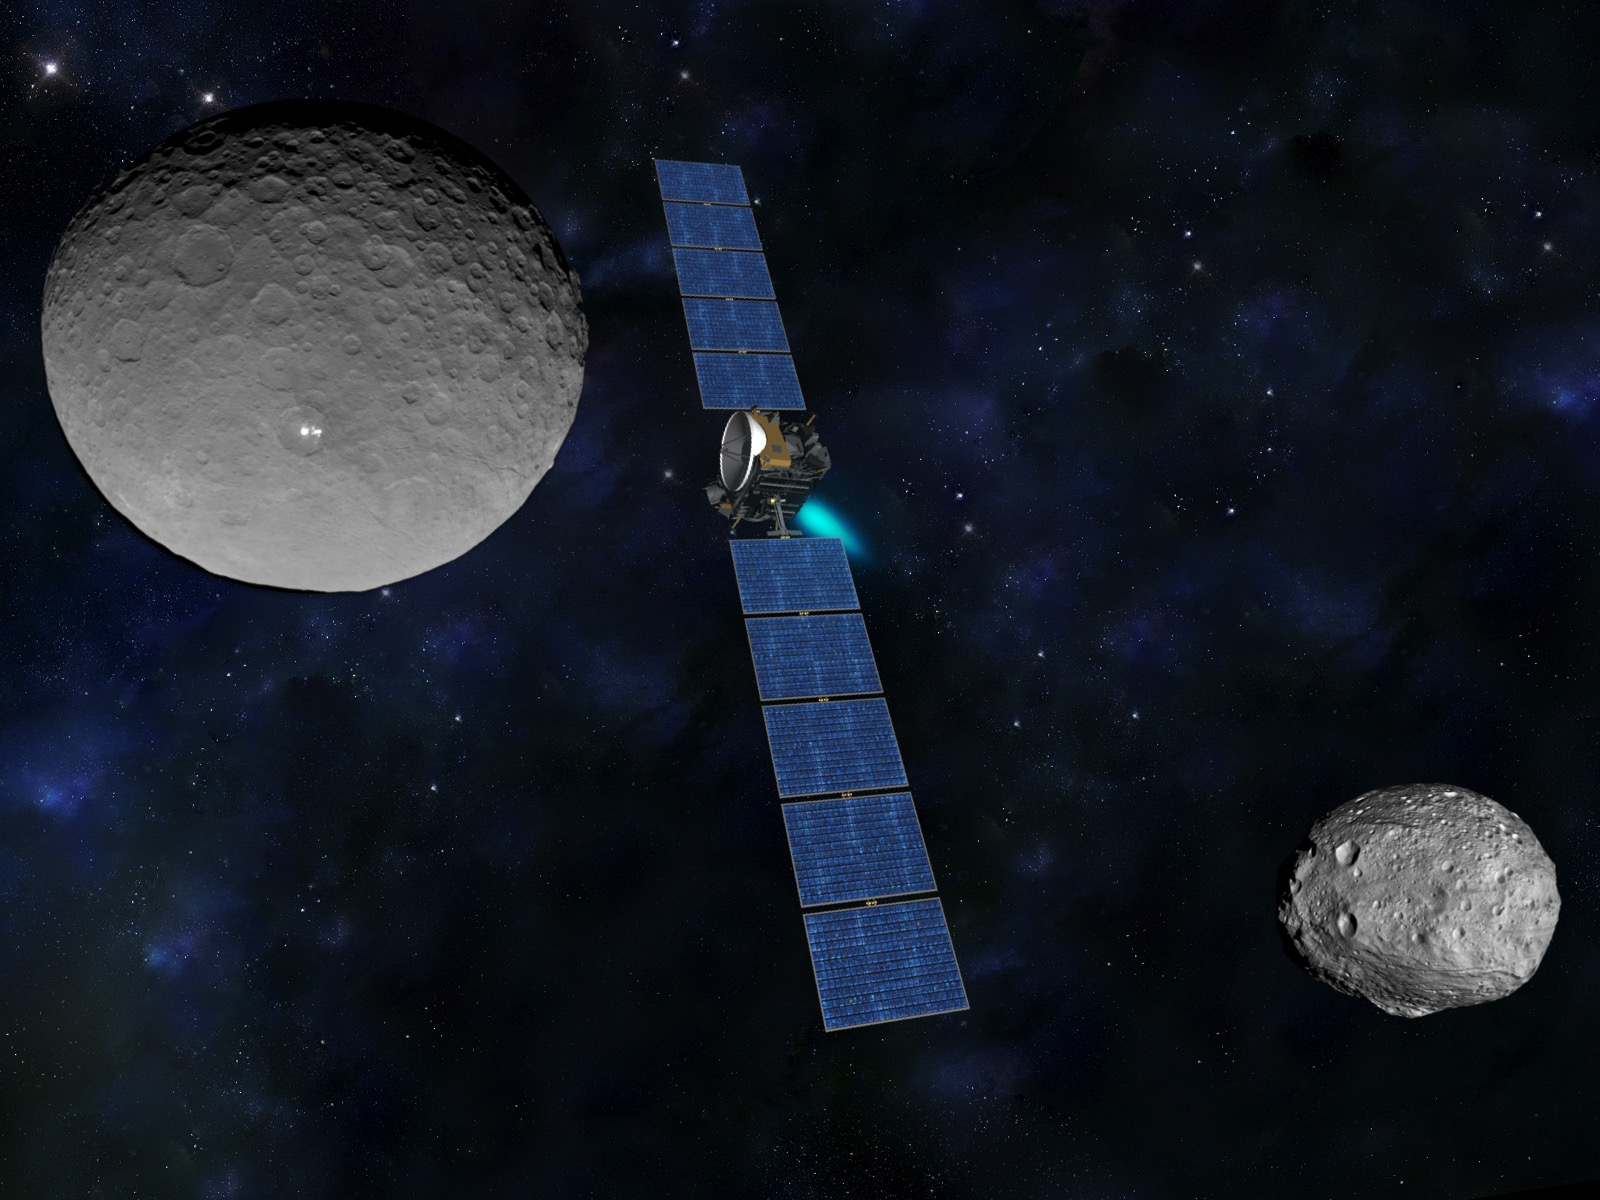 Artist's concept of the Dawn spacecraft with imagery of Ceres (left) and Vesta (right) captured during the mission. Credit: NASA/JPL-Caltech